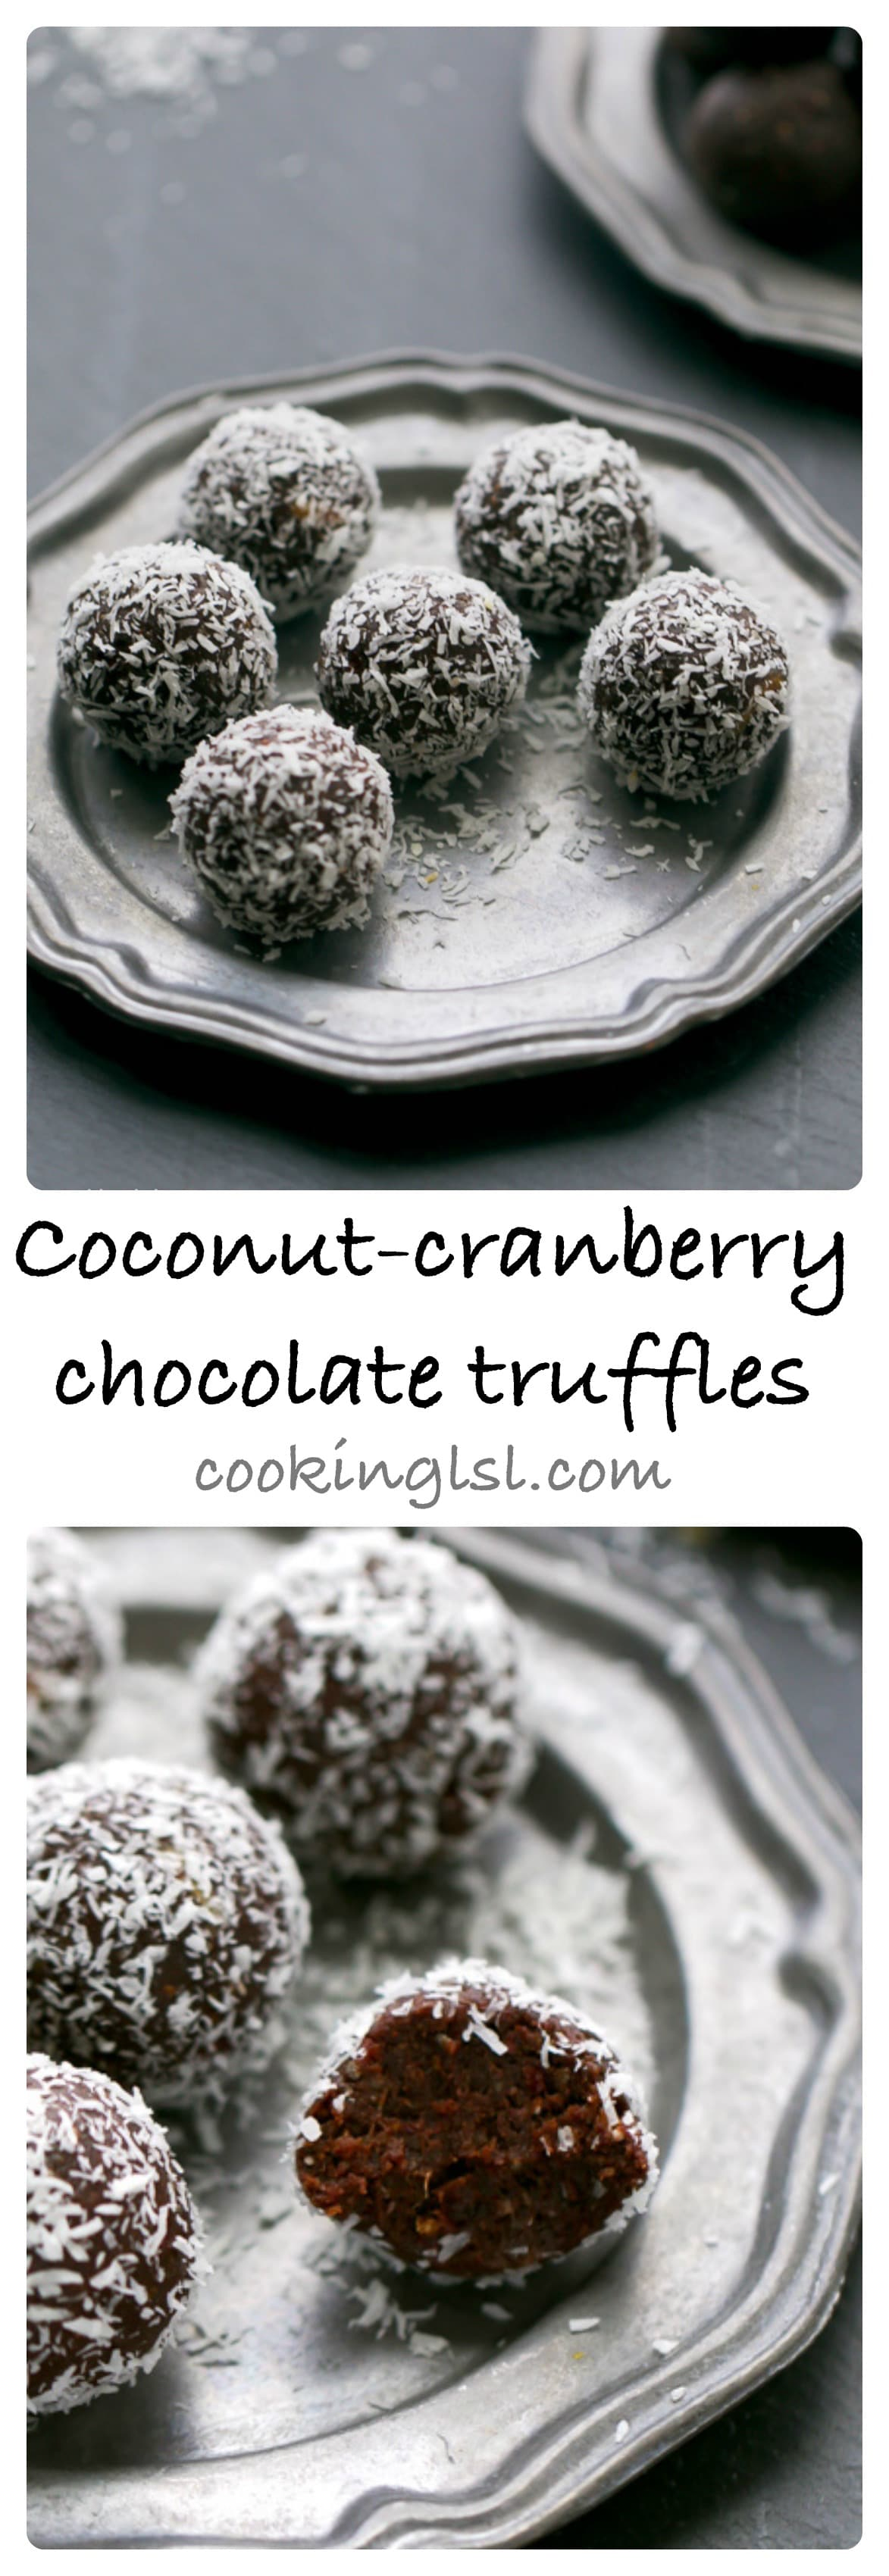 raw-coconut-cranberry-chocolate-truffles-recipe